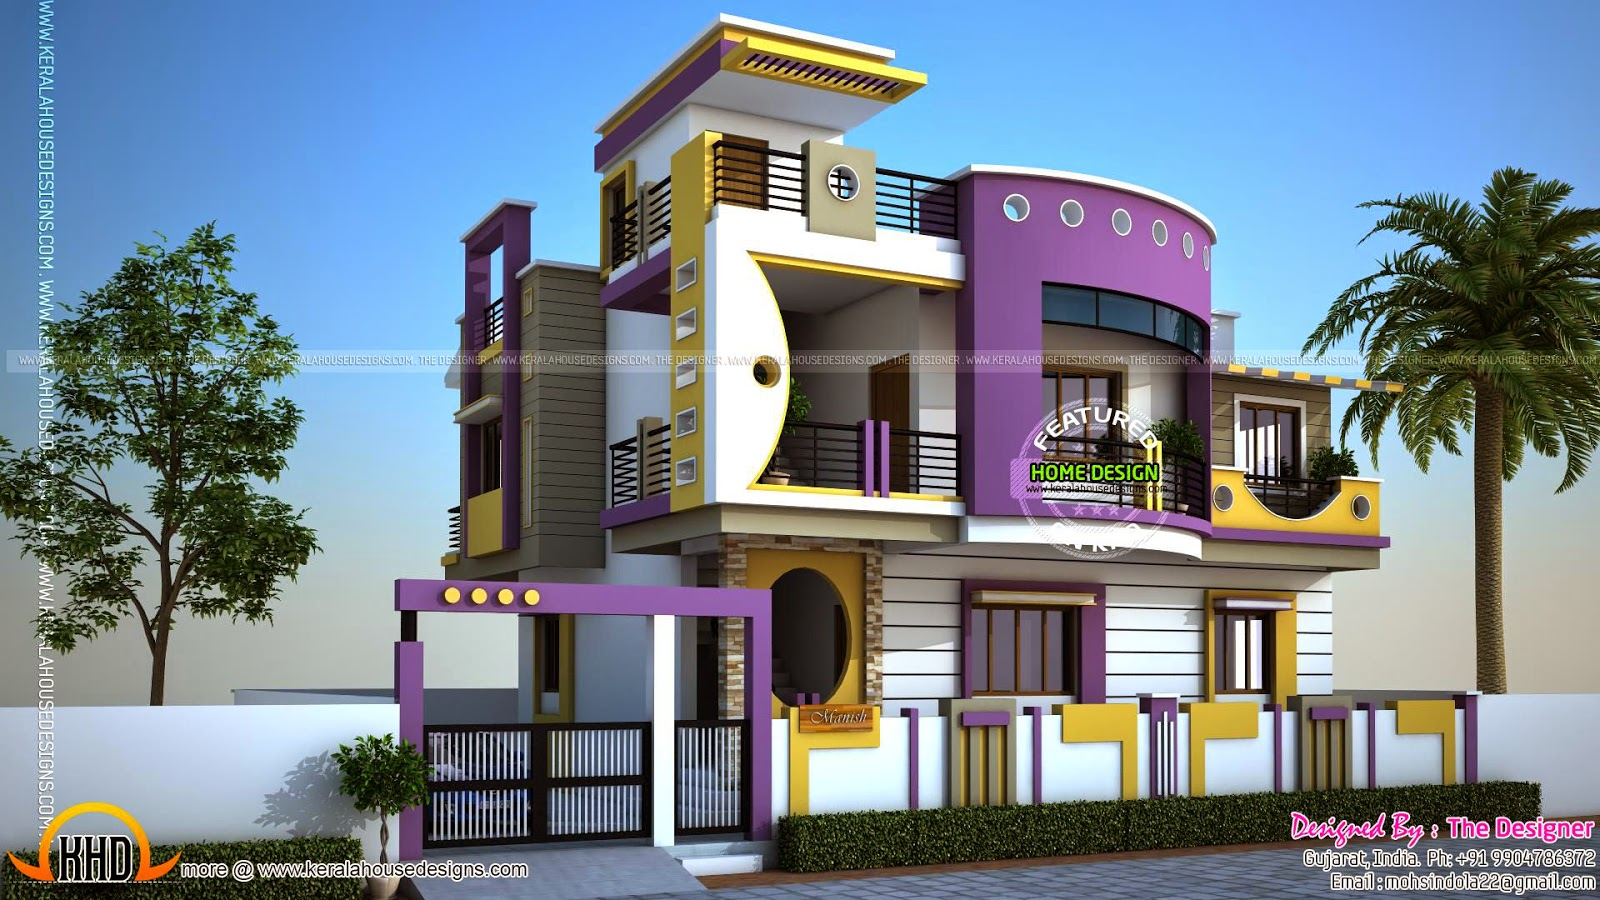 House exterior designs in contemporary style kerala home design and floor plans Home outside design